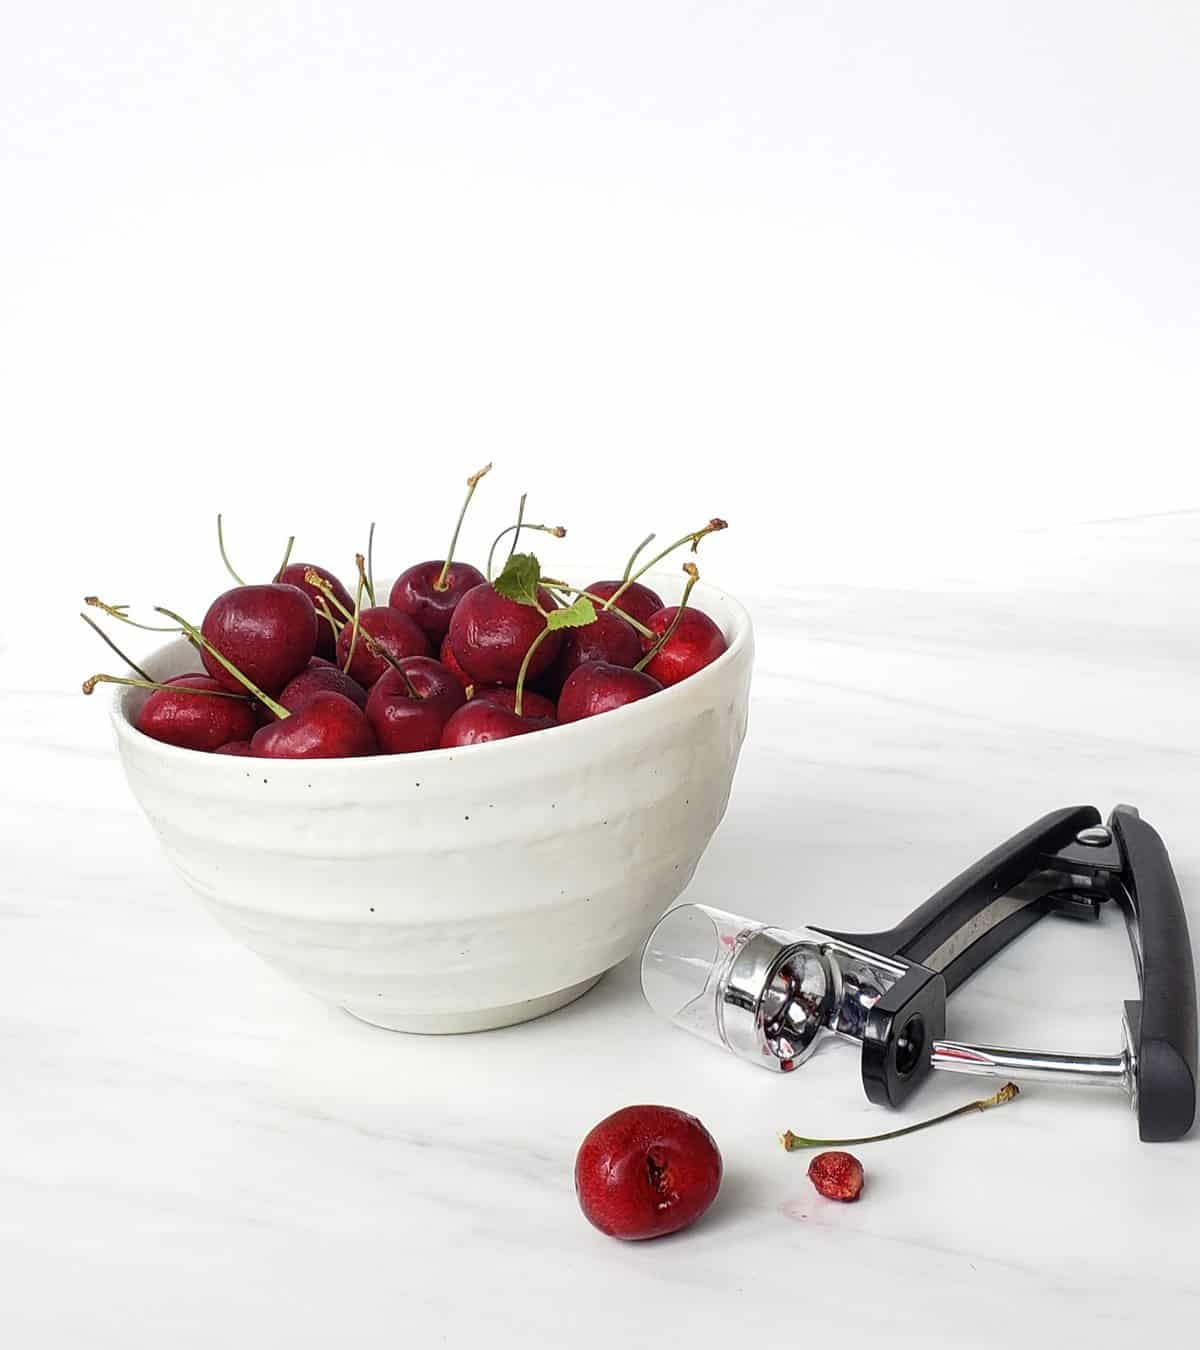 white bowl of bing cherries with stems and cherry pitter